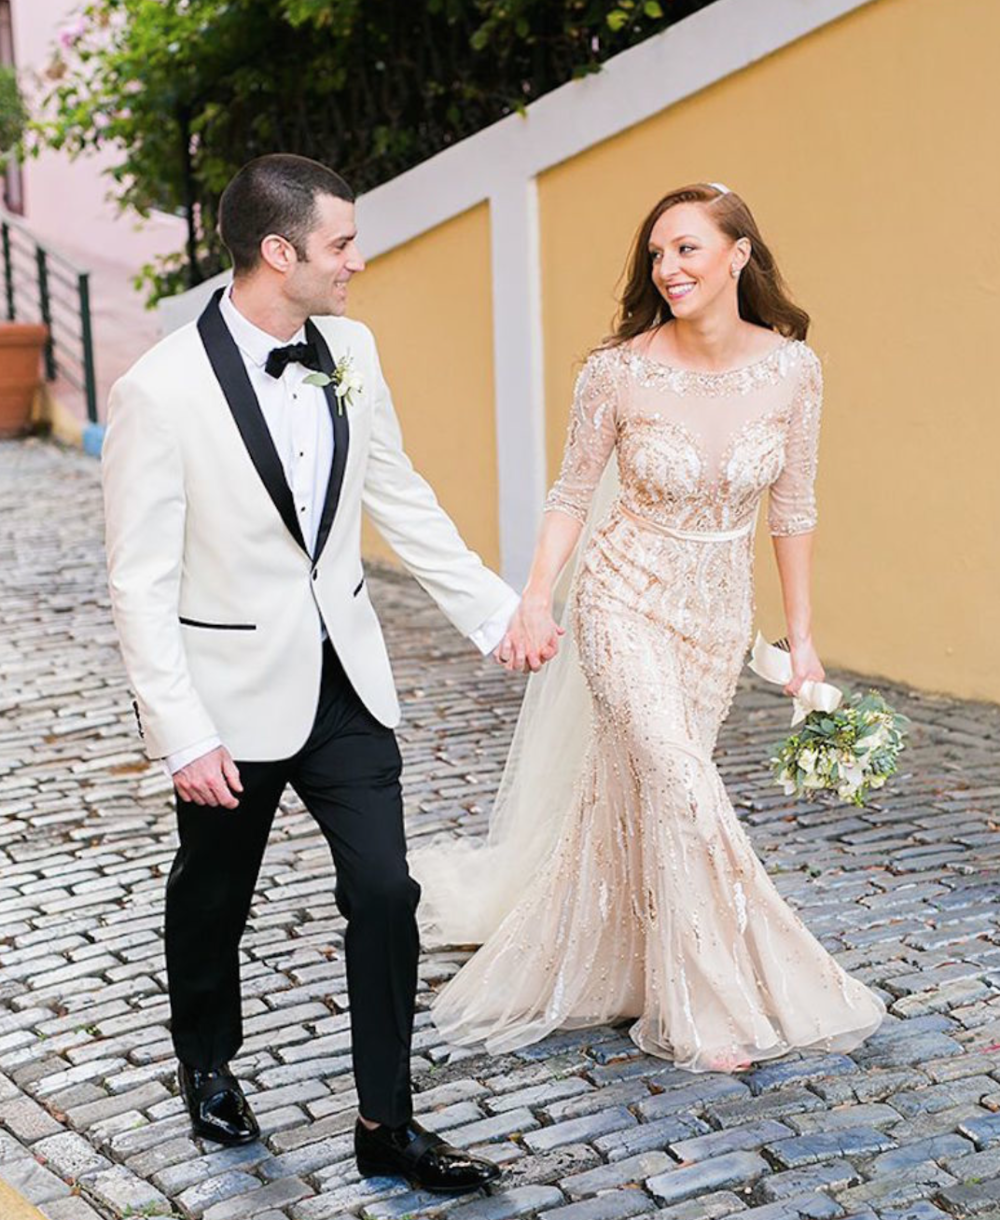 Beaded wedding gown |  Style Me Pretty